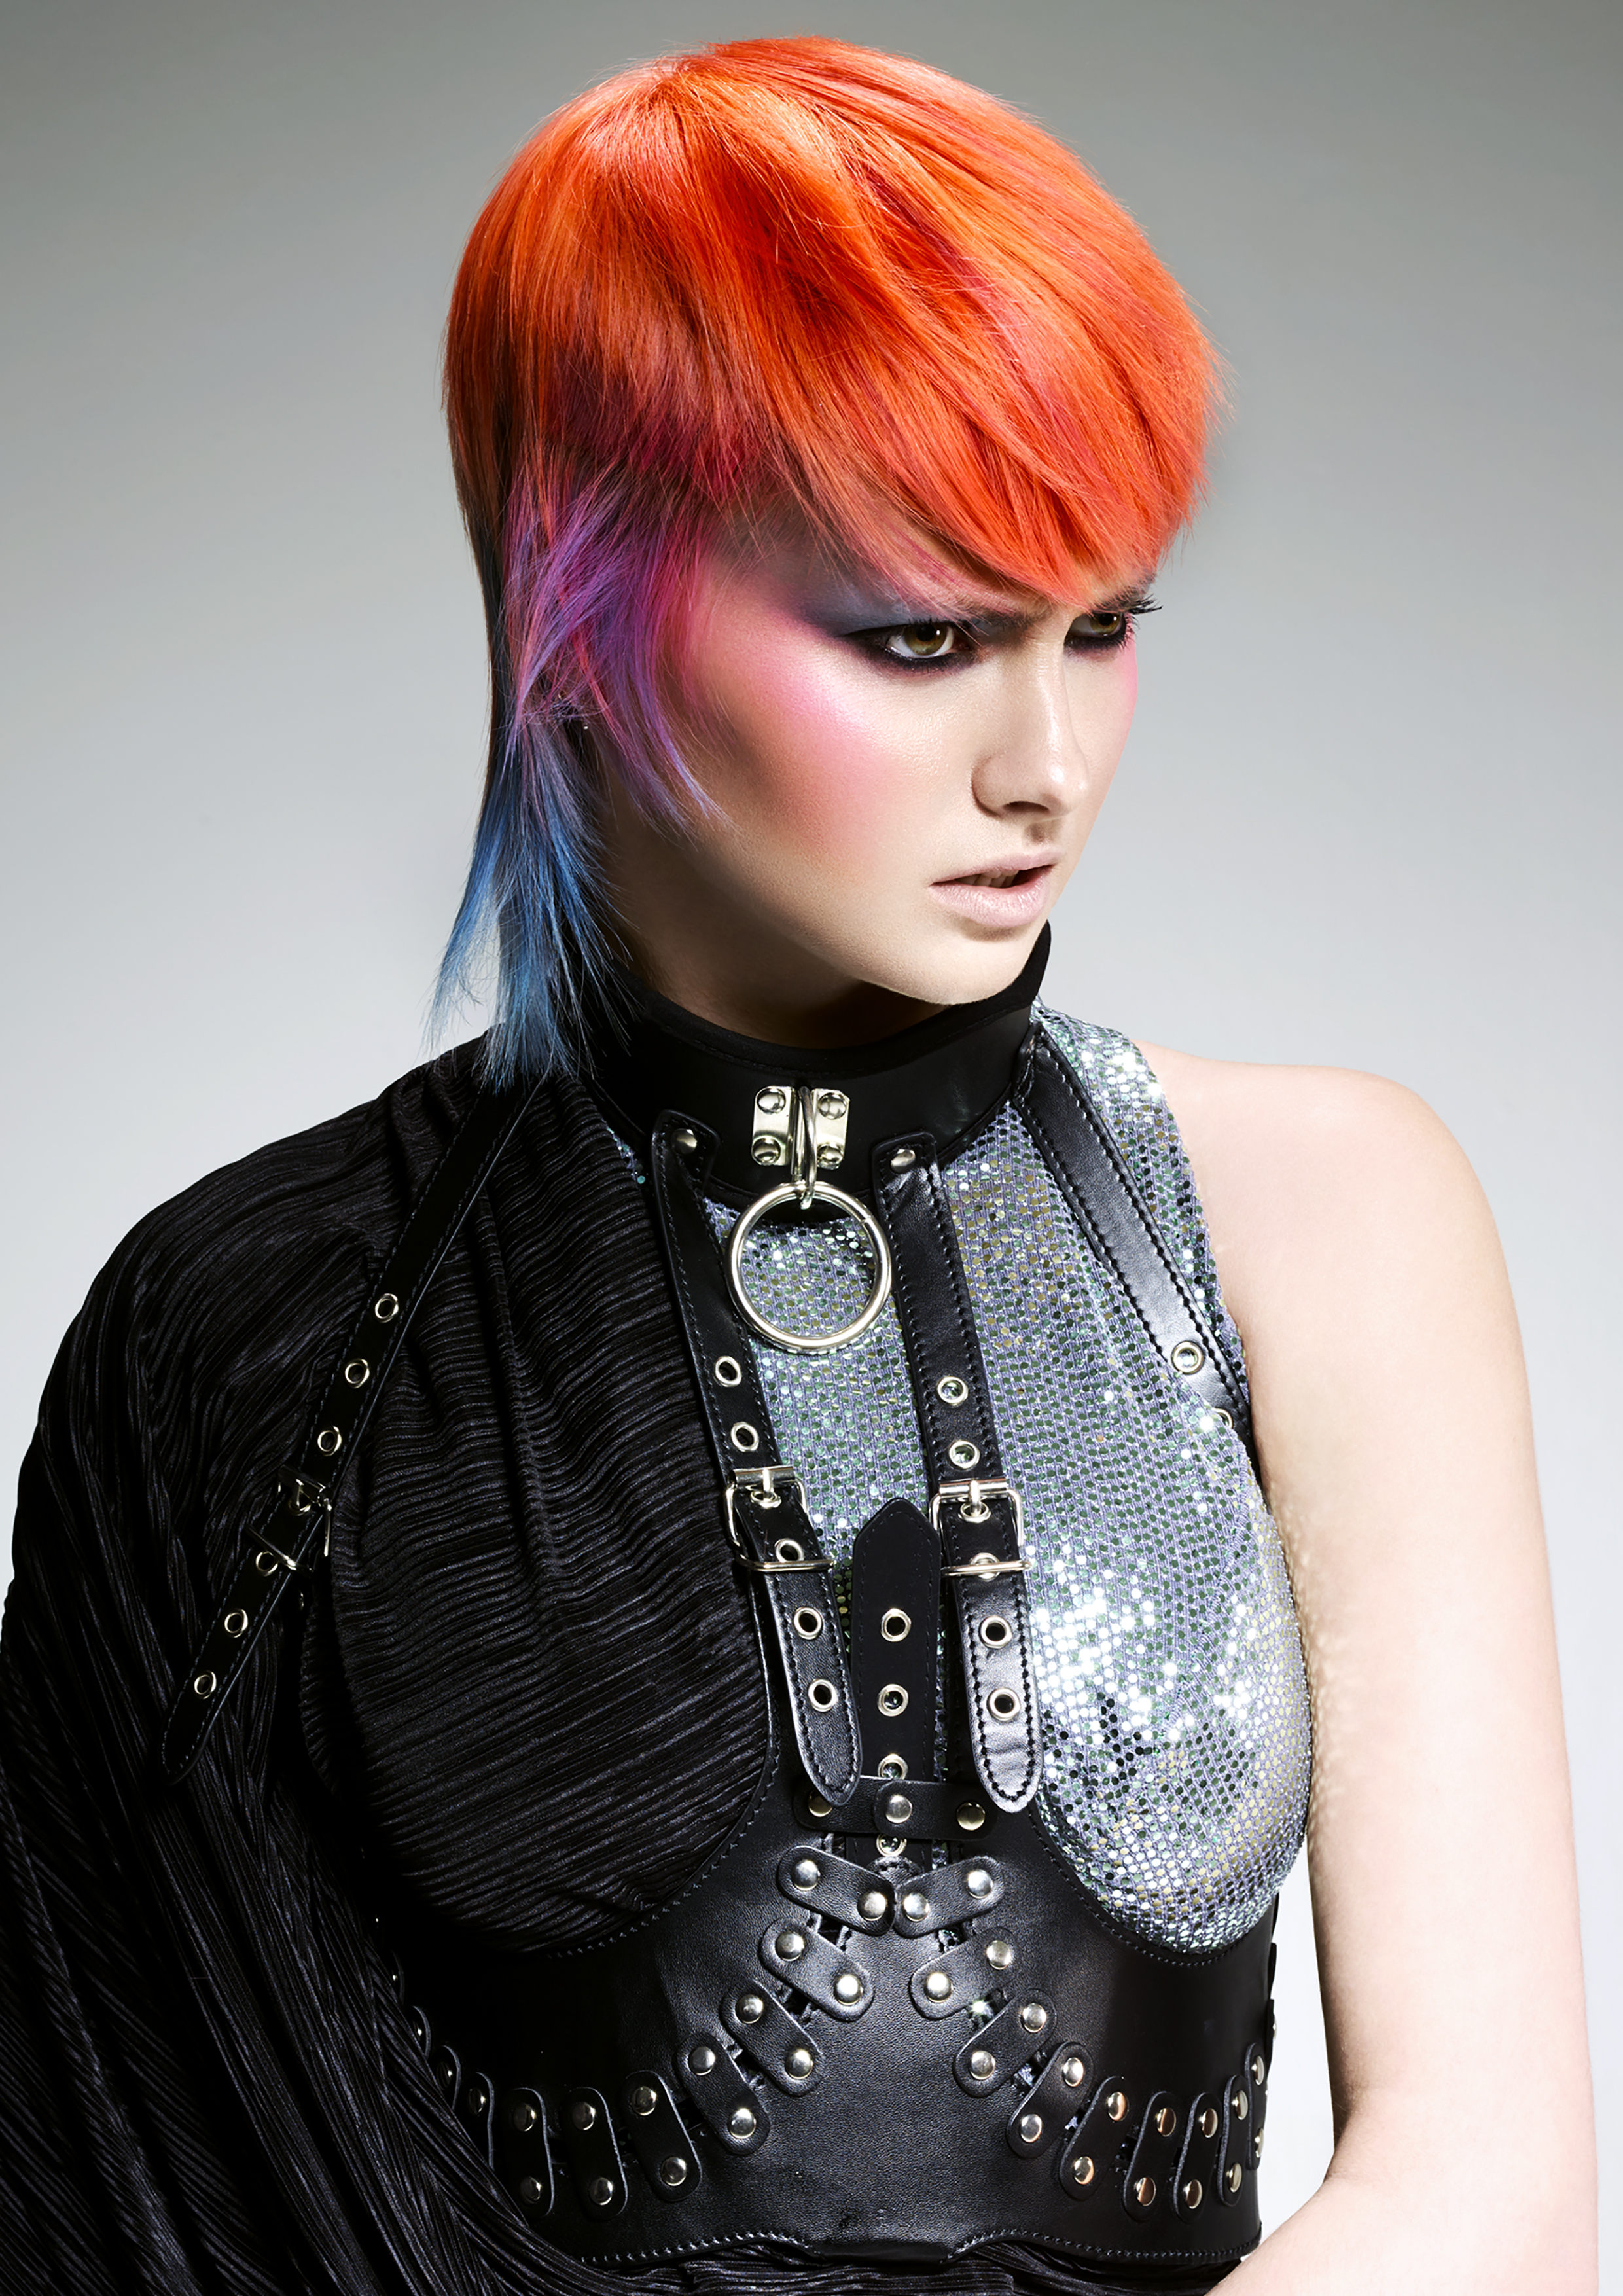 Cheveux : Chad Demchuk, maquillage : Lan Grealis, photos : John Rawson, images : FPA